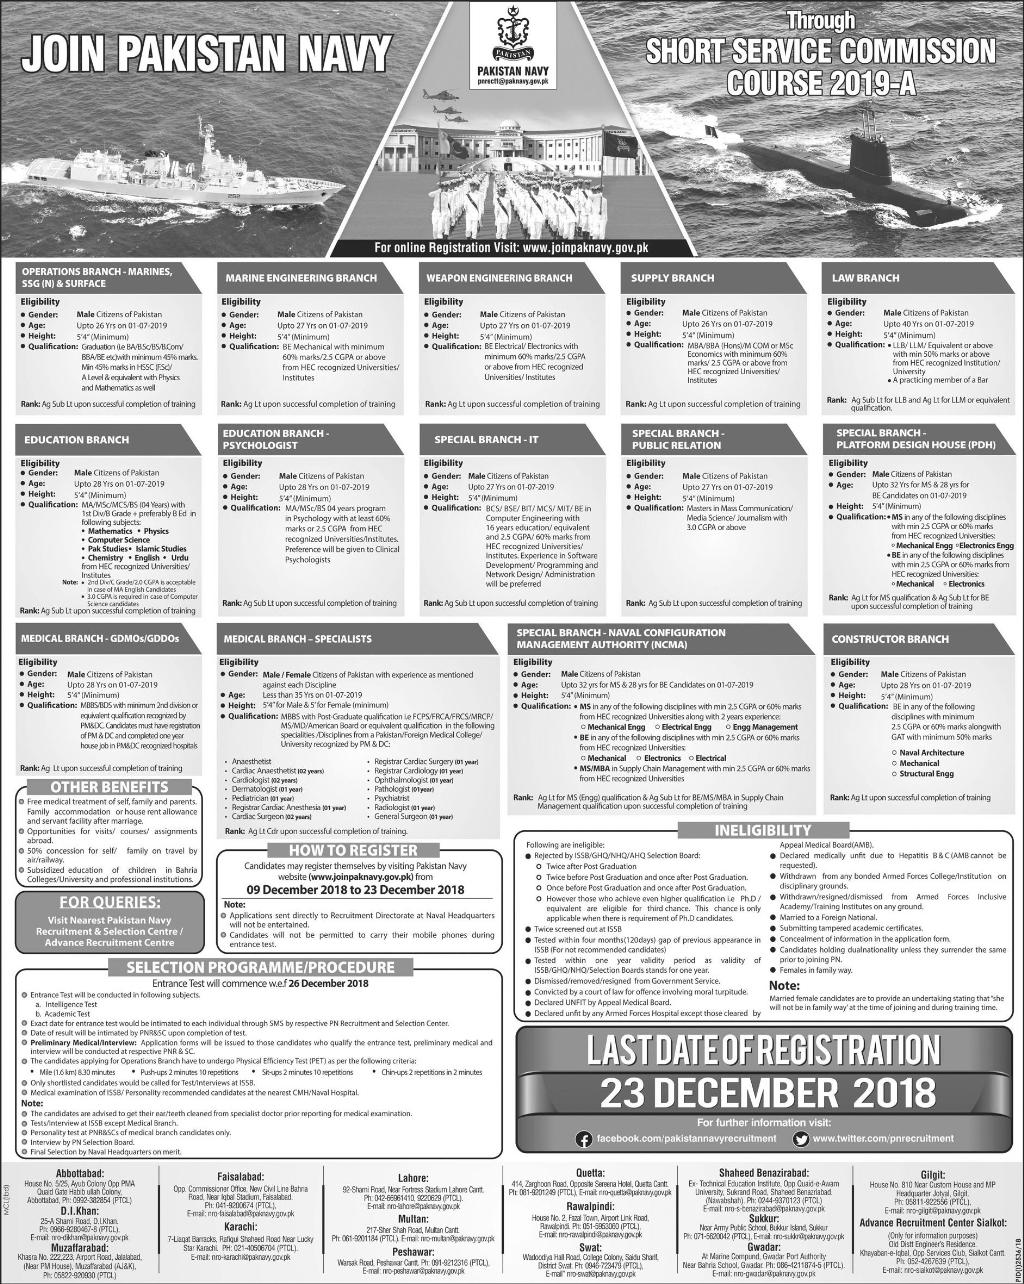 Join Pakistan Navy Through Short Service Commission Course 09 December 2018